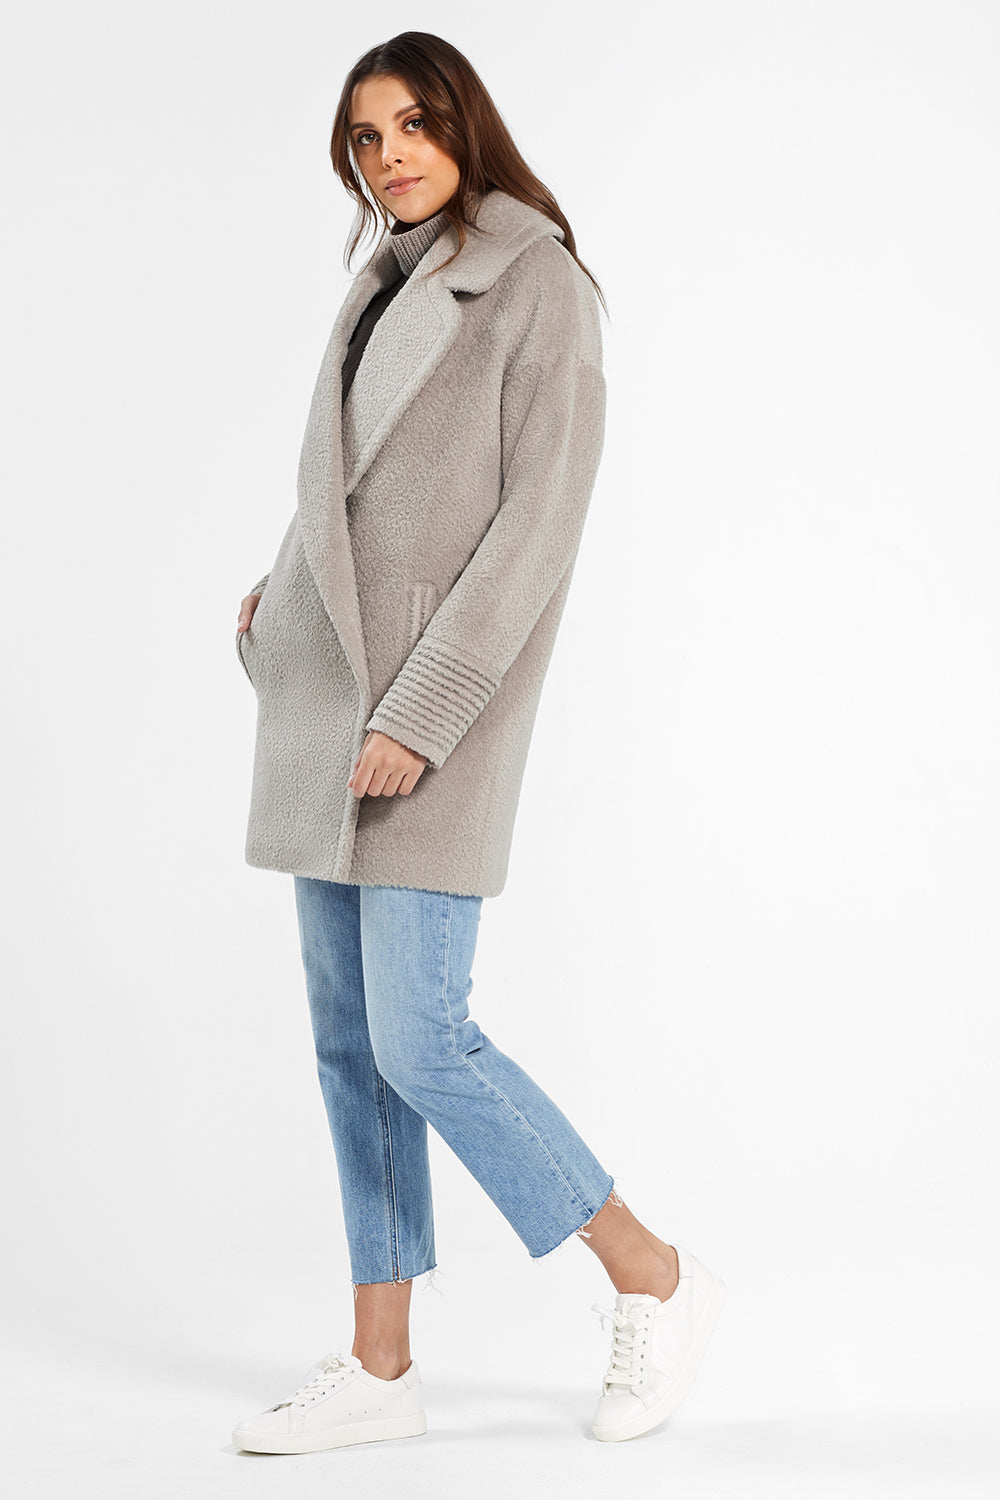 Sentaler Bouclé Alpaca Mid Length Oversized Notched Collar Coat featured in Bouclé Alpaca and available in Sand. Seen from side.